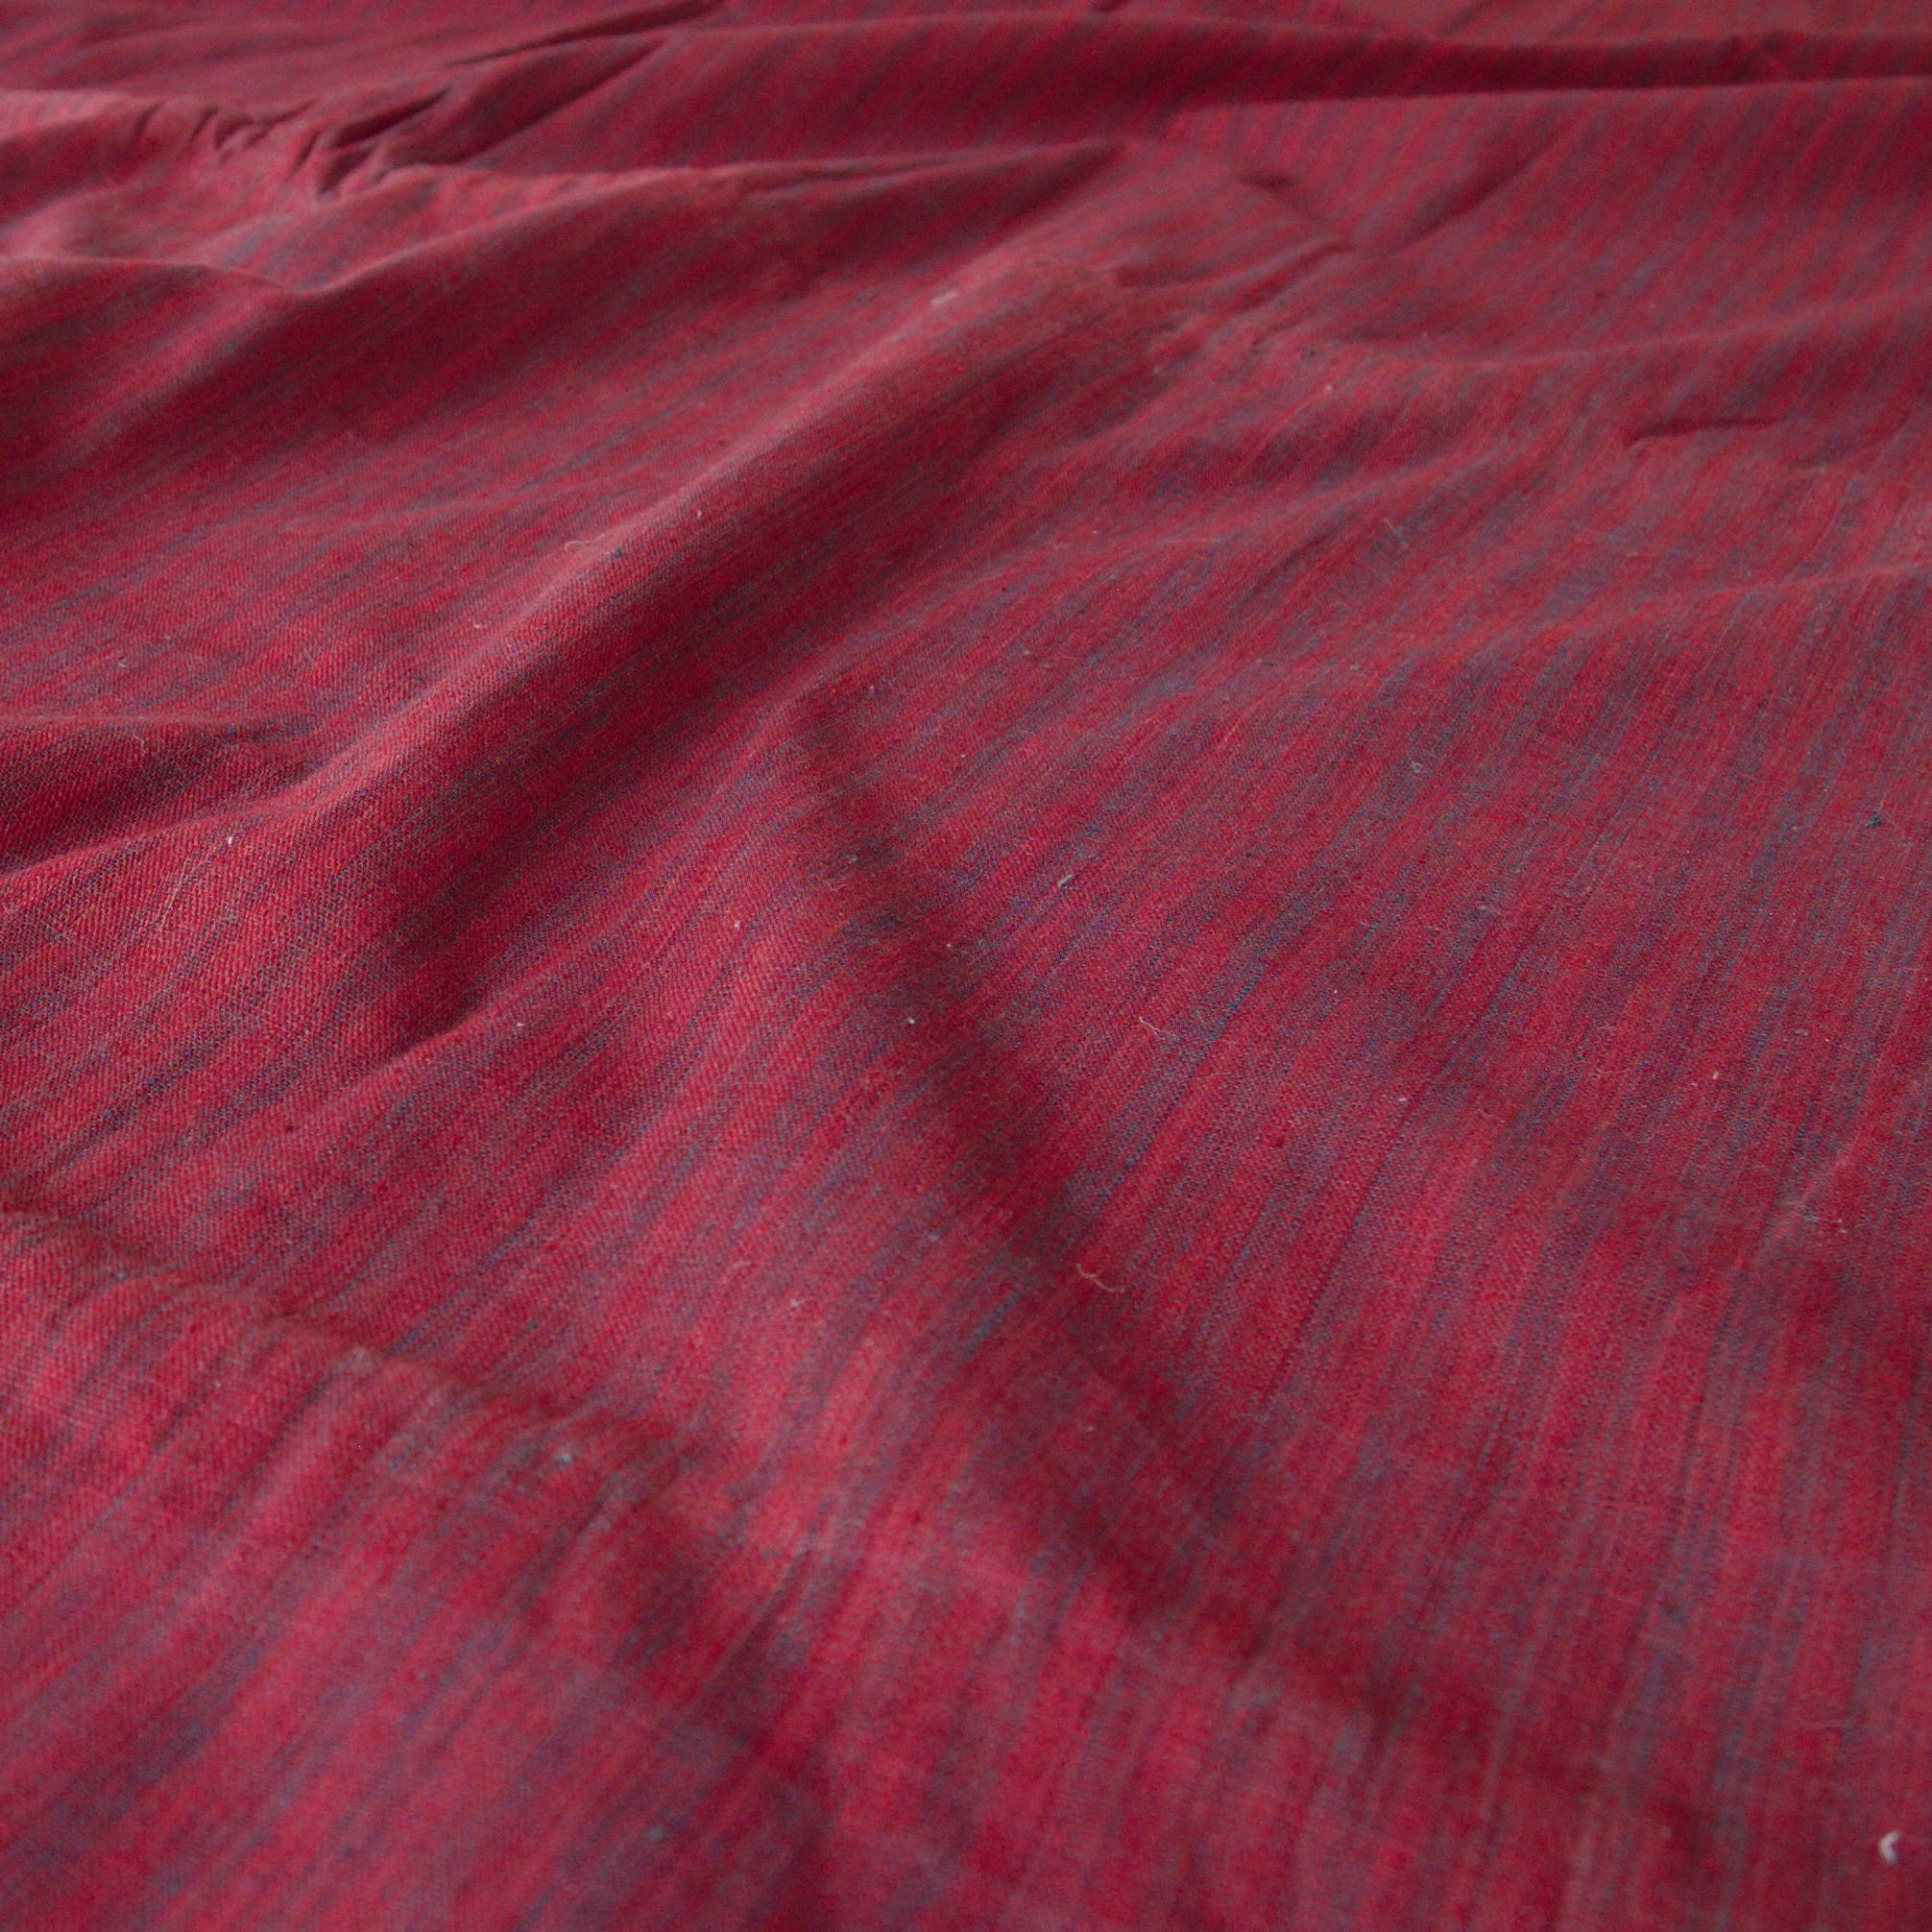 100% Handloom Woven Cotton - Dented Stripes - Red Alizarin Dented Warp, Natural Indigo Green Warp - Contrast